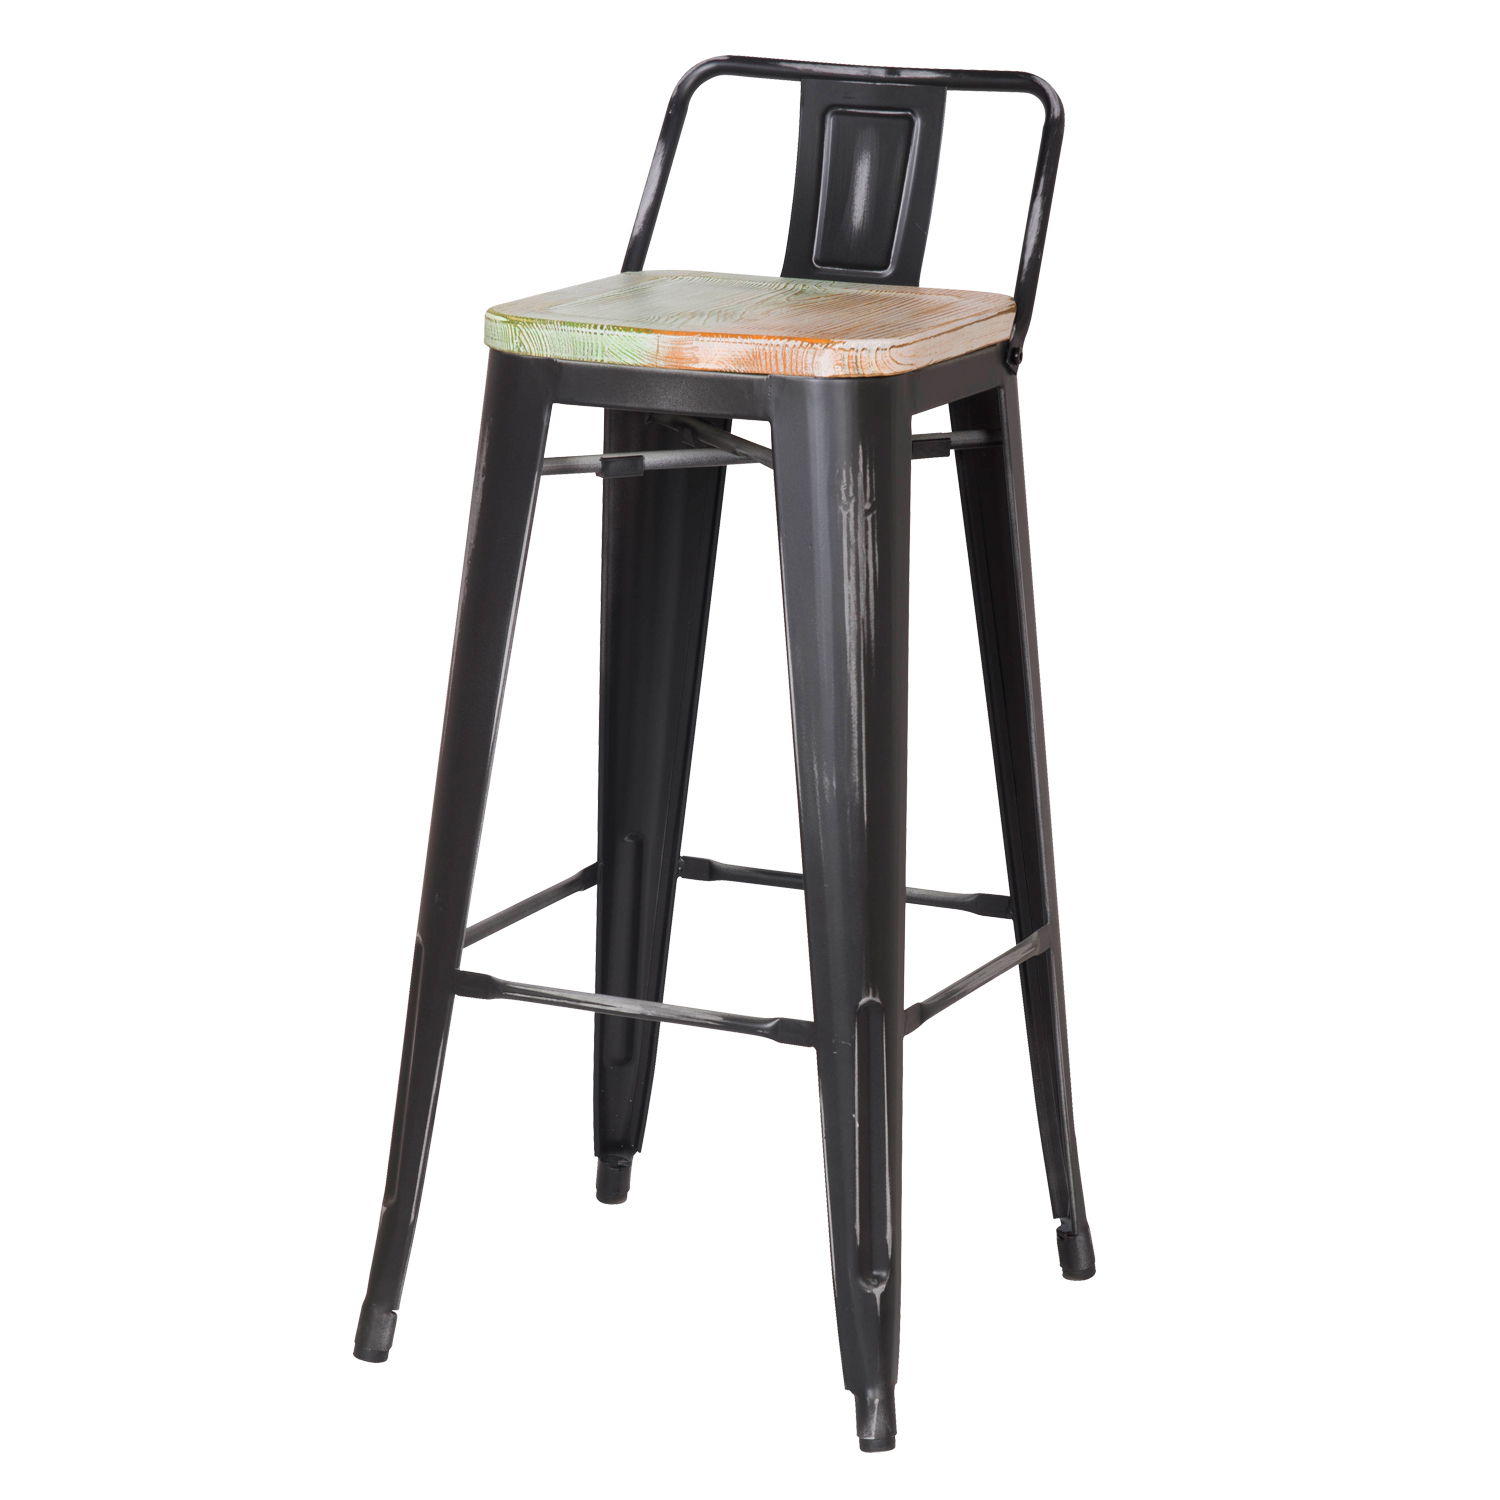 Surprising Decenthome Distresed Black Metal Bar Stools With Multi Color Wooden Seat Ch0276 2 Pabps2019 Chair Design Images Pabps2019Com